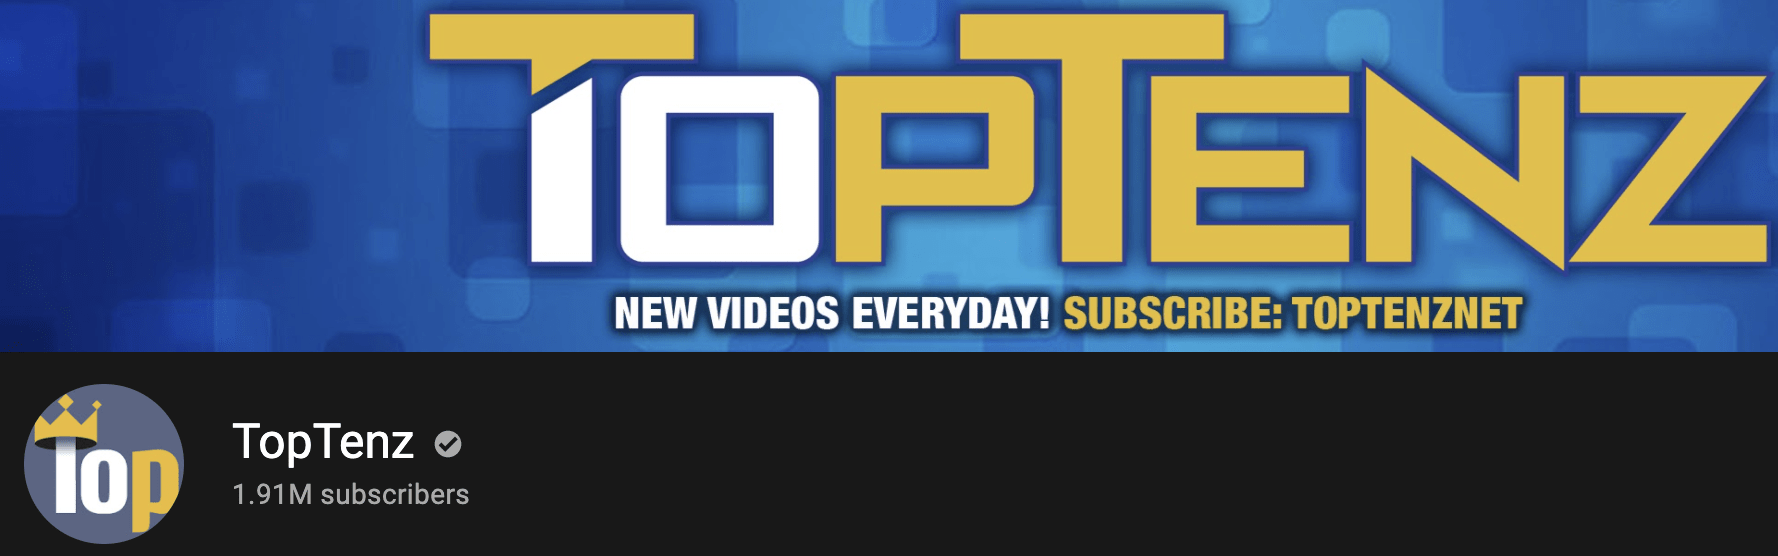 Take a look at the TopTenz channel